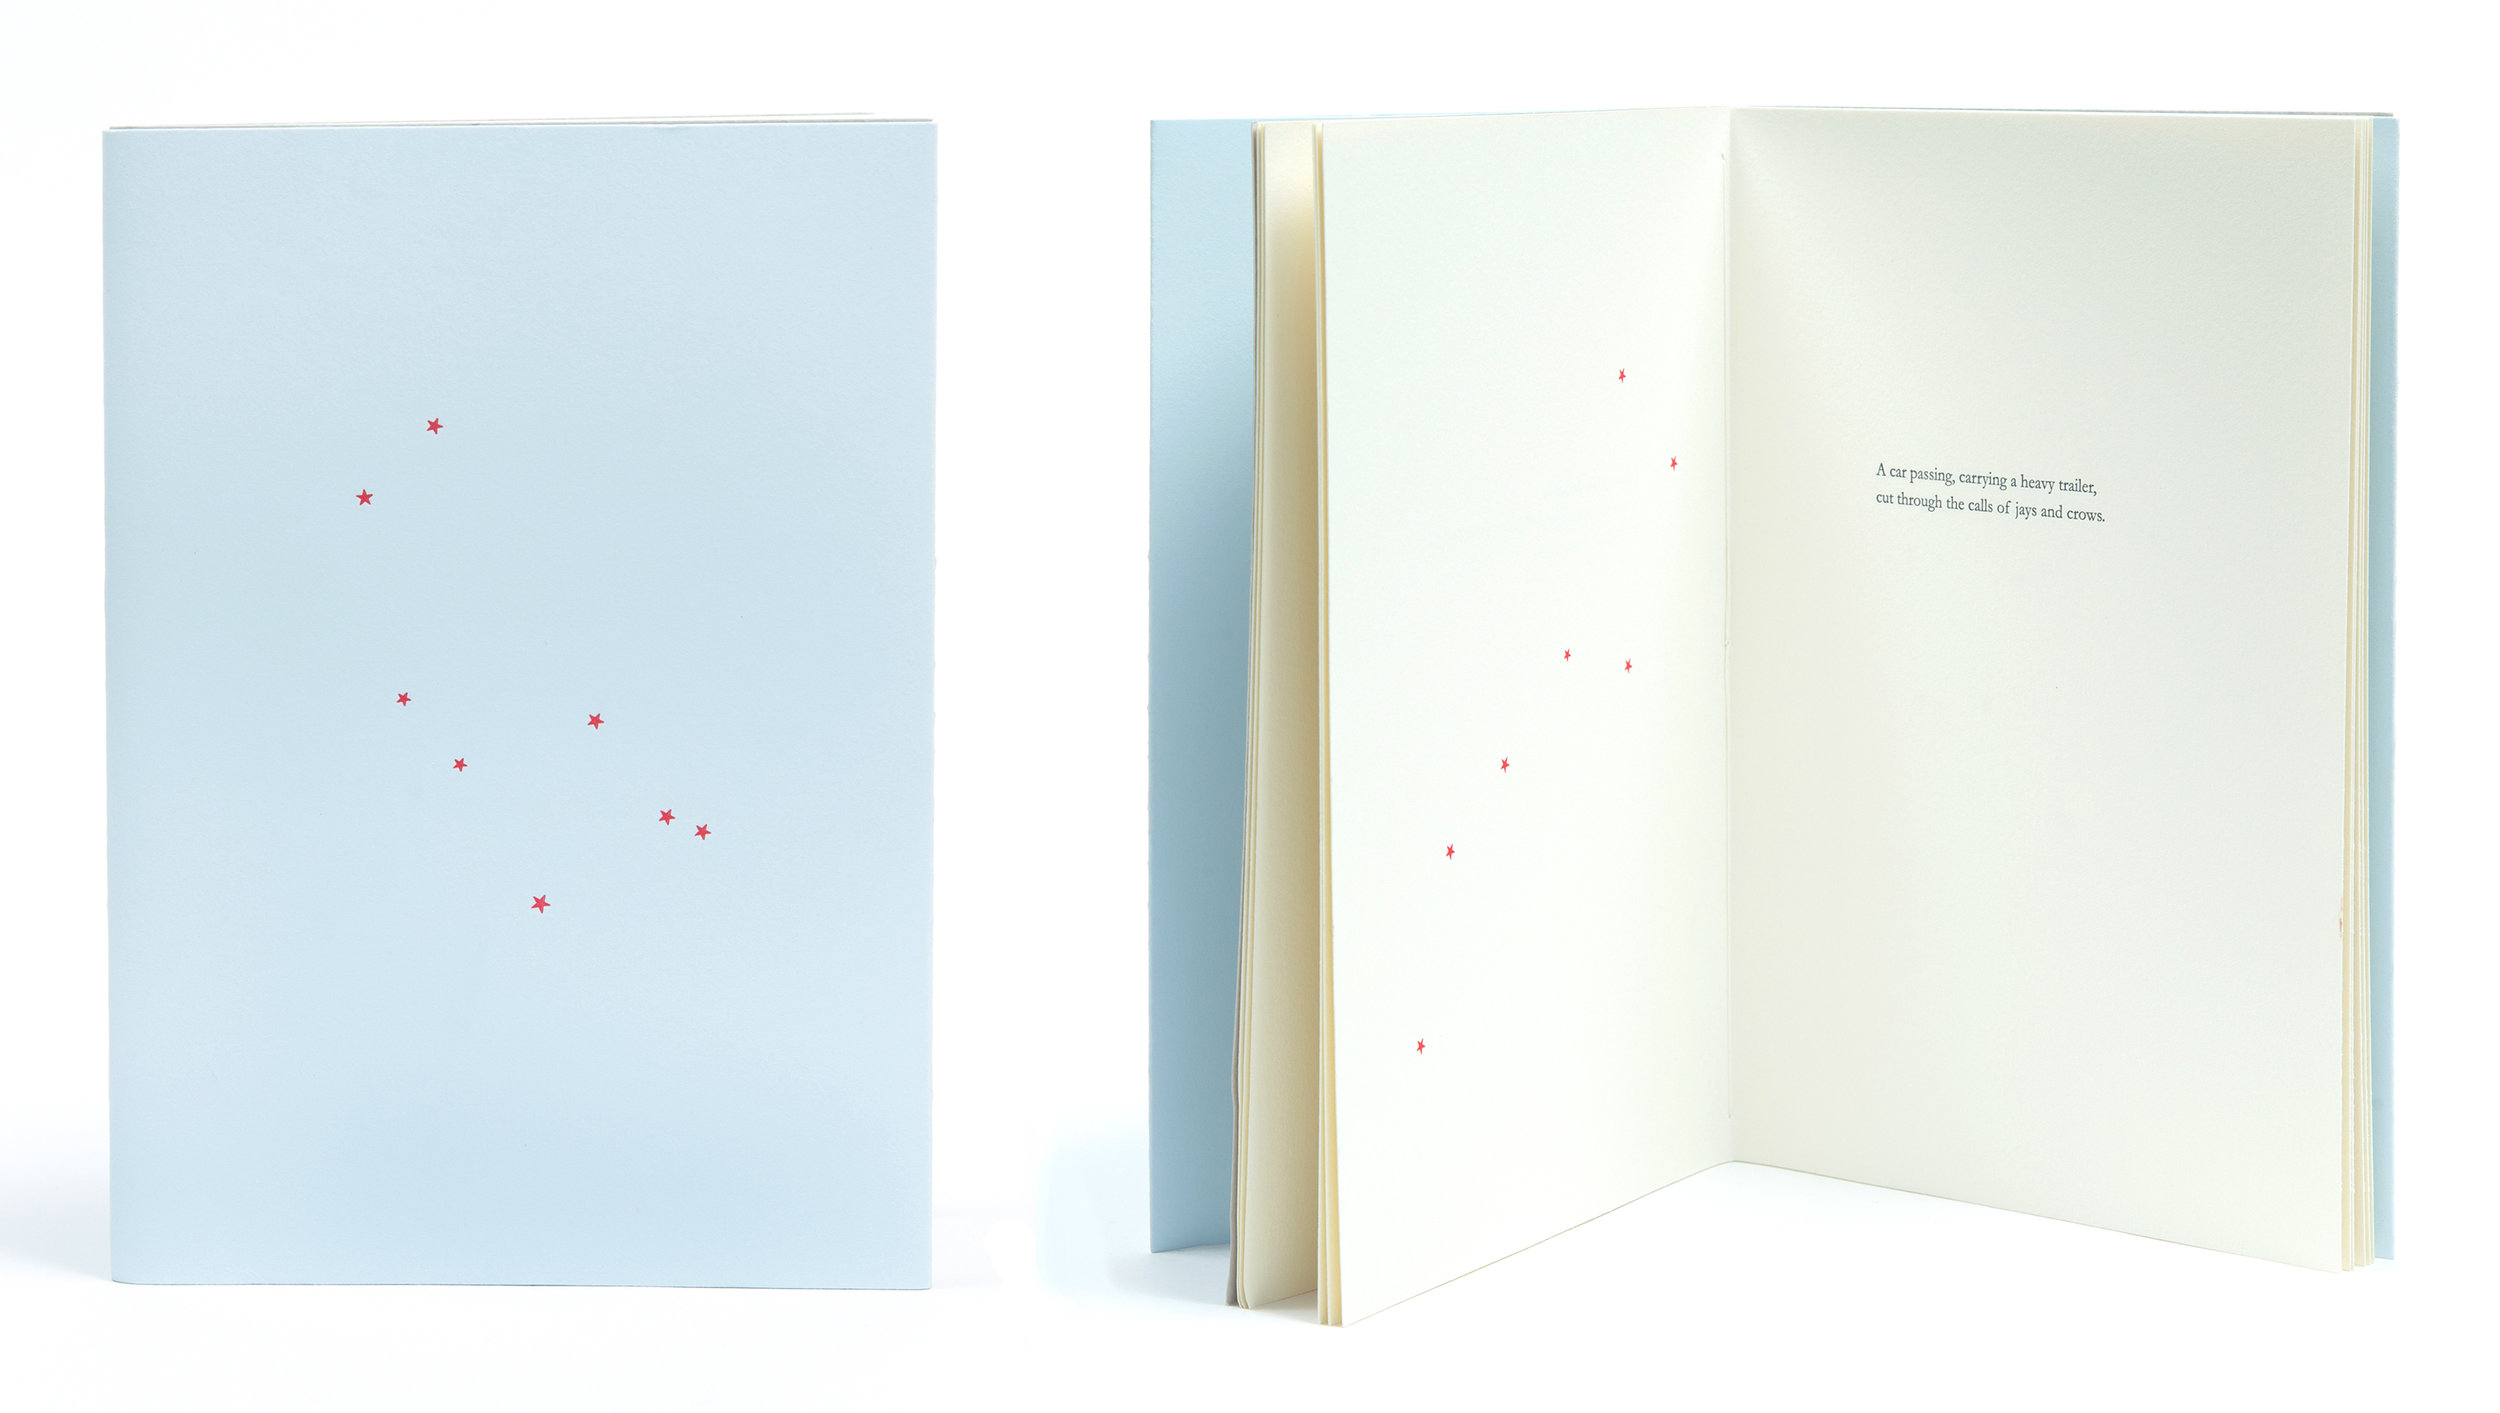 "Just Before Dawn   2012   Just Before Dawn  is a fine press book of a poem and images by artist/printer Erika Adams. The poem is split into ten parts and adjacent to each is a constellation printed in red. Printed from polymer plates prepared by Boxcar Press in Syracuse New York, on a Vandercook Universal III Flat Bed Press, the type is set in Book Antiqua and the paper is Somerset Book. The books are bound using a pamphlet stitch.  Erika Adams, with the assistance of Margot Ecke, printed and bound the edition of forty books, at Smokey Road Press in Winterville, Georgia. An additional ten books were case bound by Campbell-Logan Bindery in Minneapolis, Minnesota.  6"" x 9"", 28 pages.  photographed by Mercedes Jelinek"